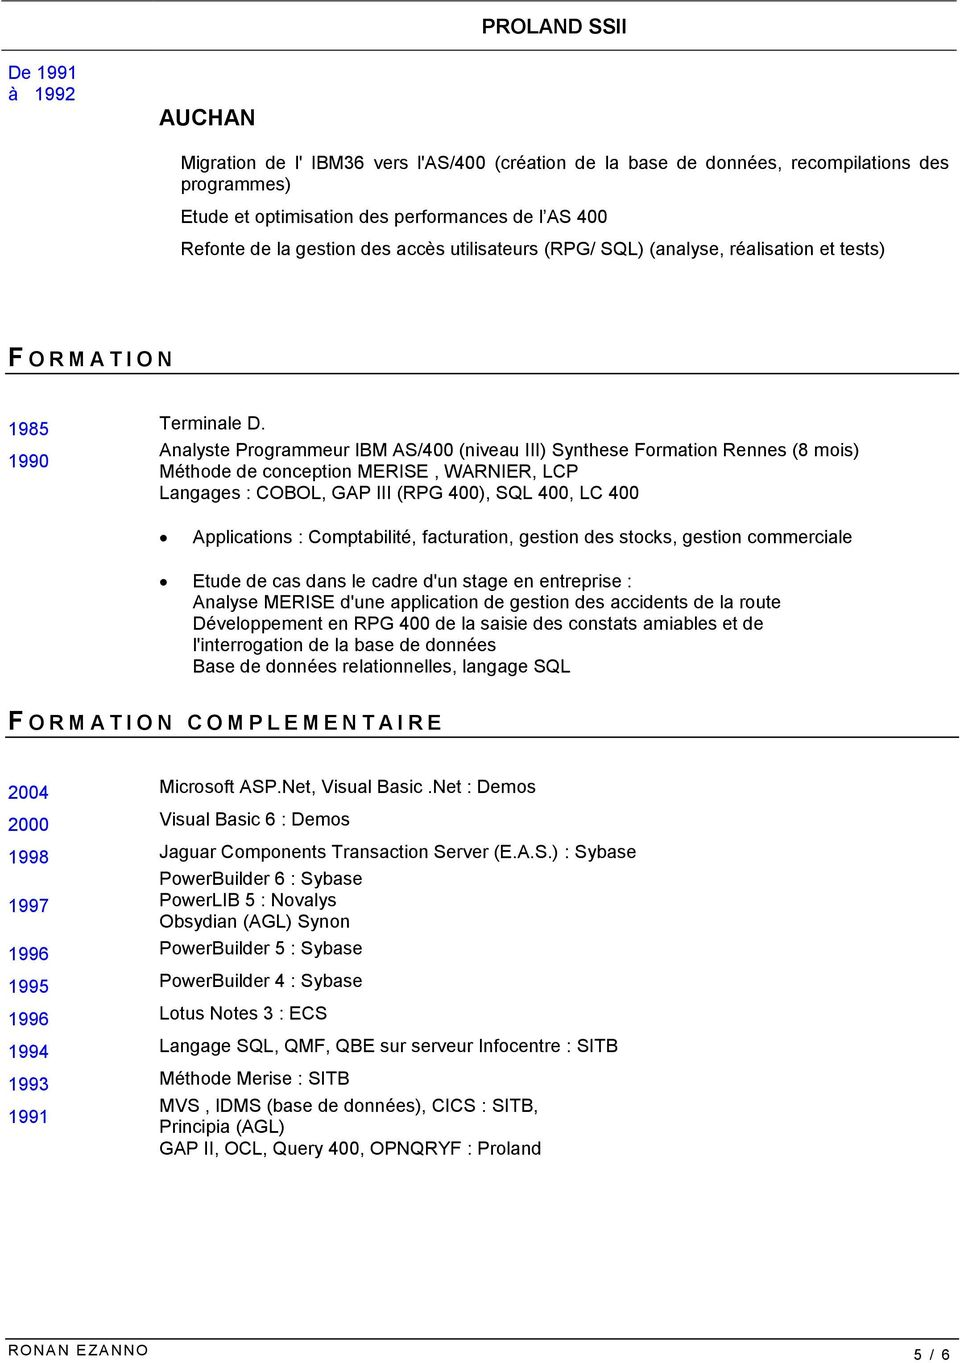 1990 Analyste Programmeur IBM AS/400 (niveau III) Synthese Formation Rennes (8 mois) Méthode de conception MERISE, WARNIER, LCP Langages : COBOL, GAP III (RPG 400), SQL 400, LC 400 Applications :